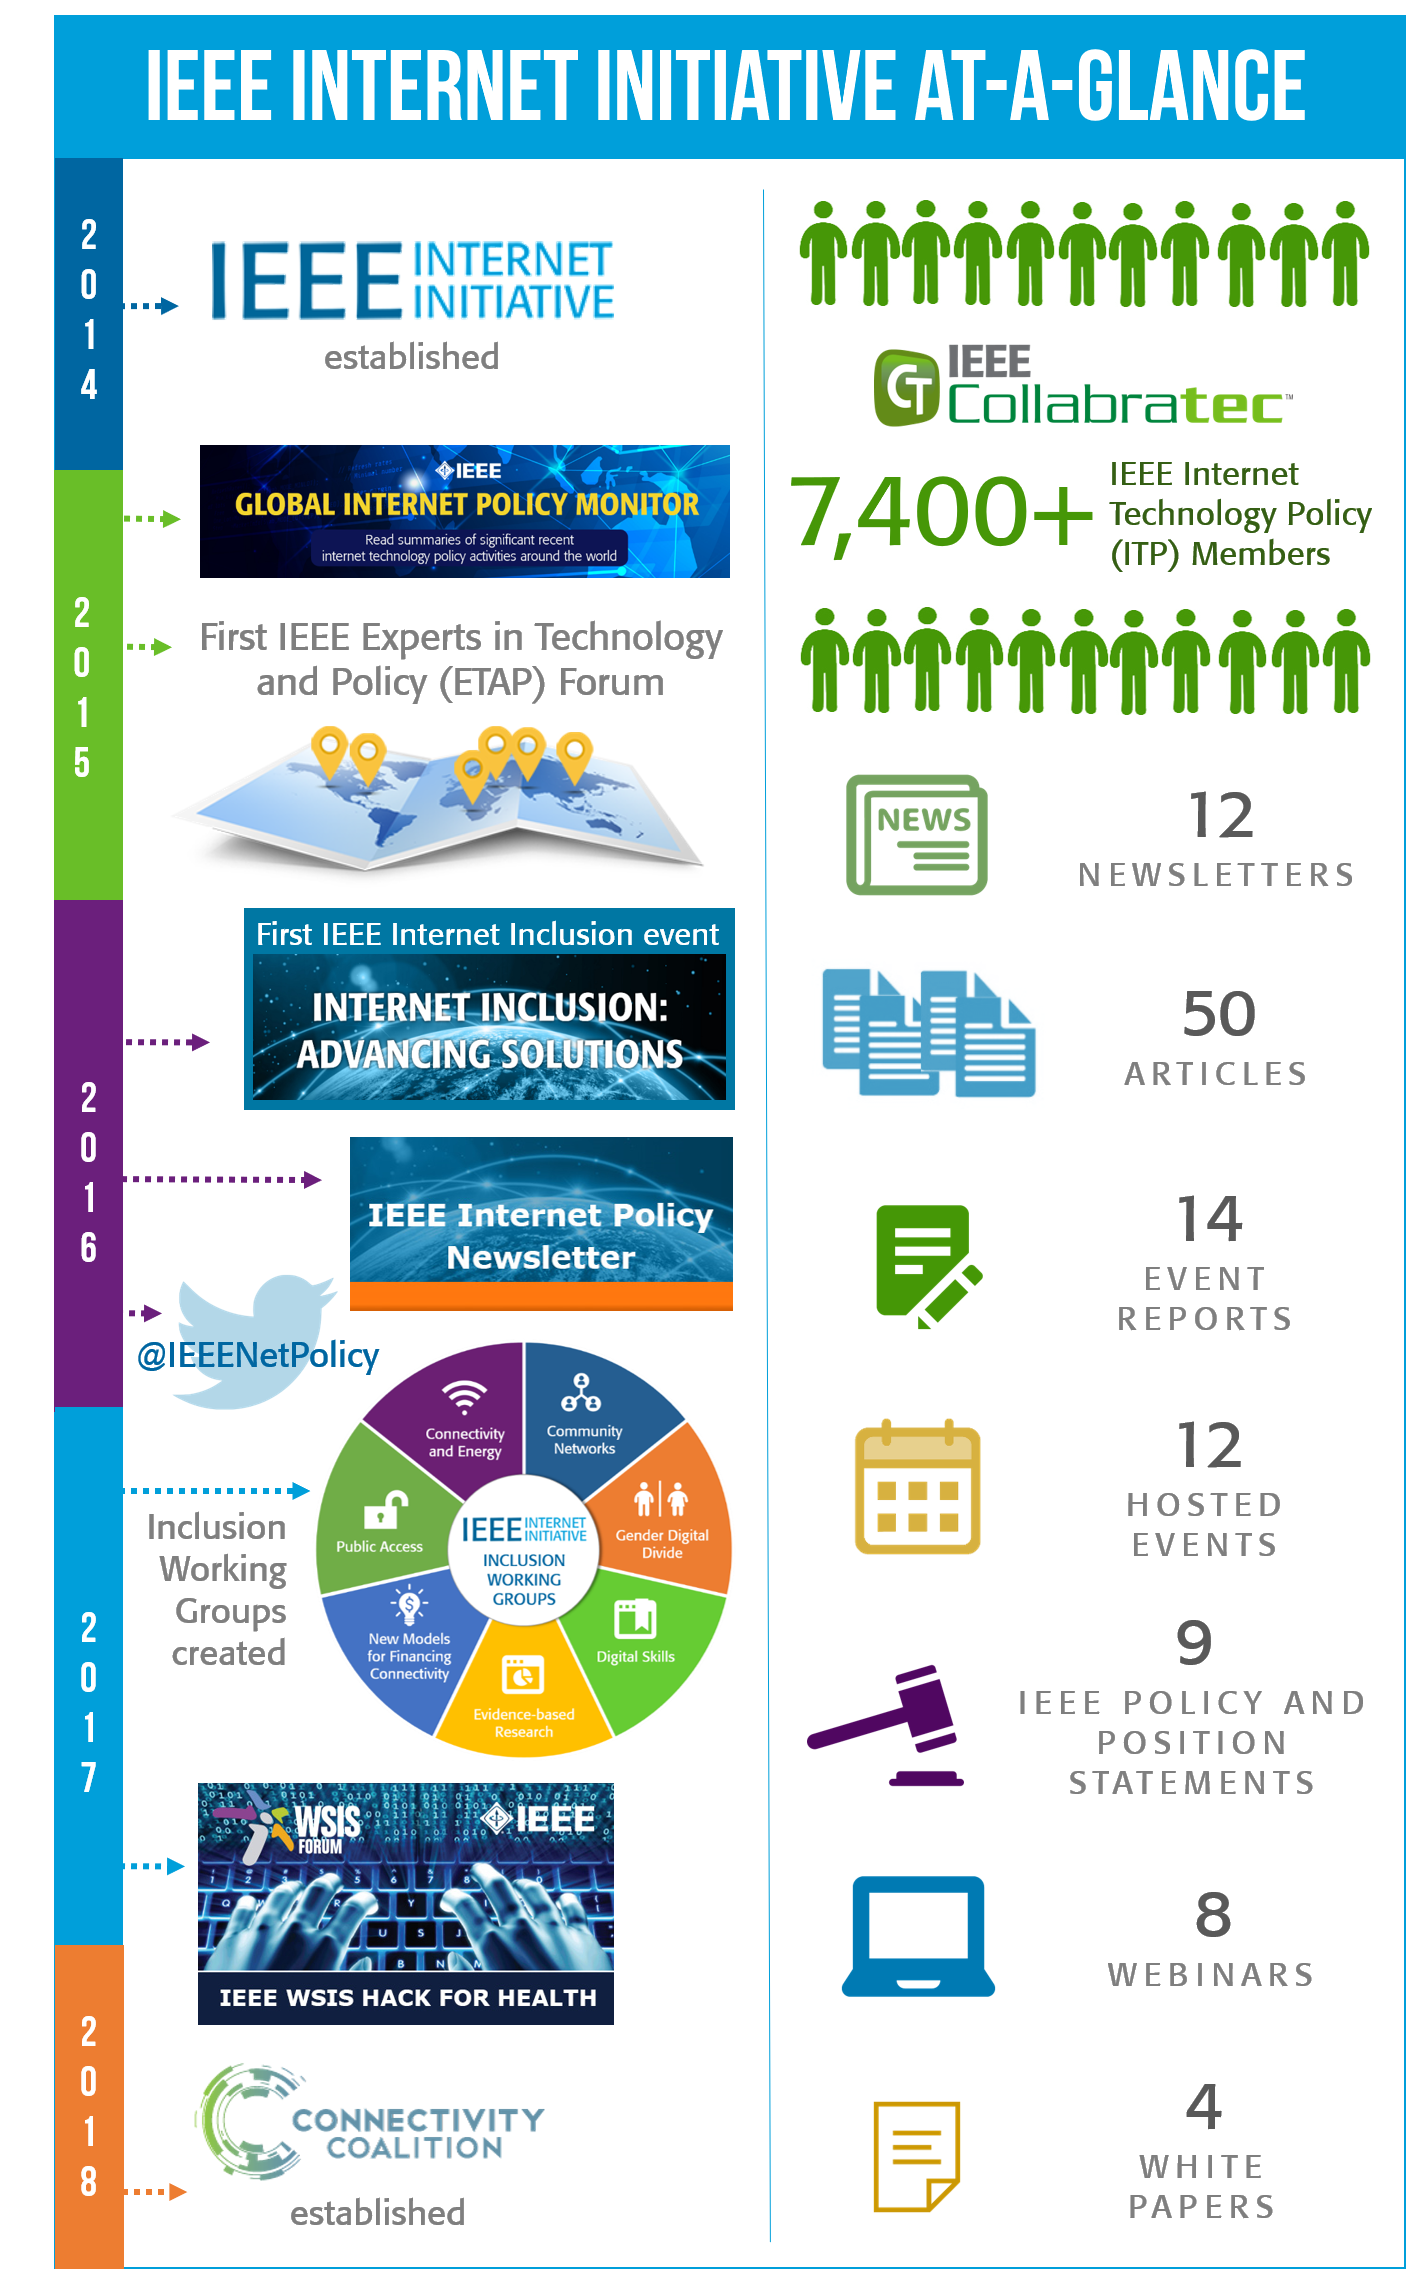 IEEE Internet Initiative at a glance